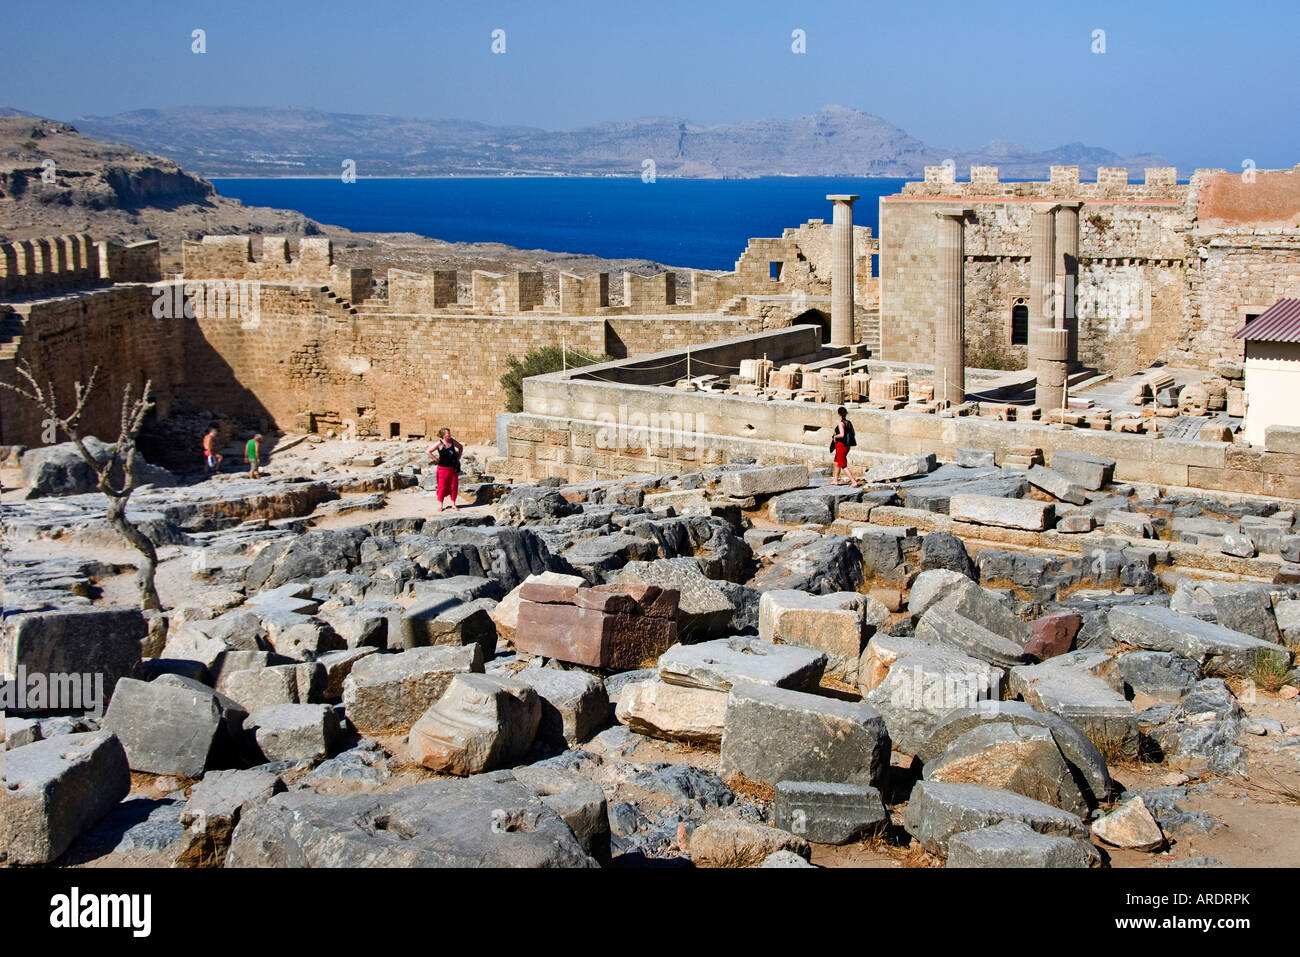 Inside the Acropolis at Lindos, Rhodes, Dodecanese Greece. Stock Photo